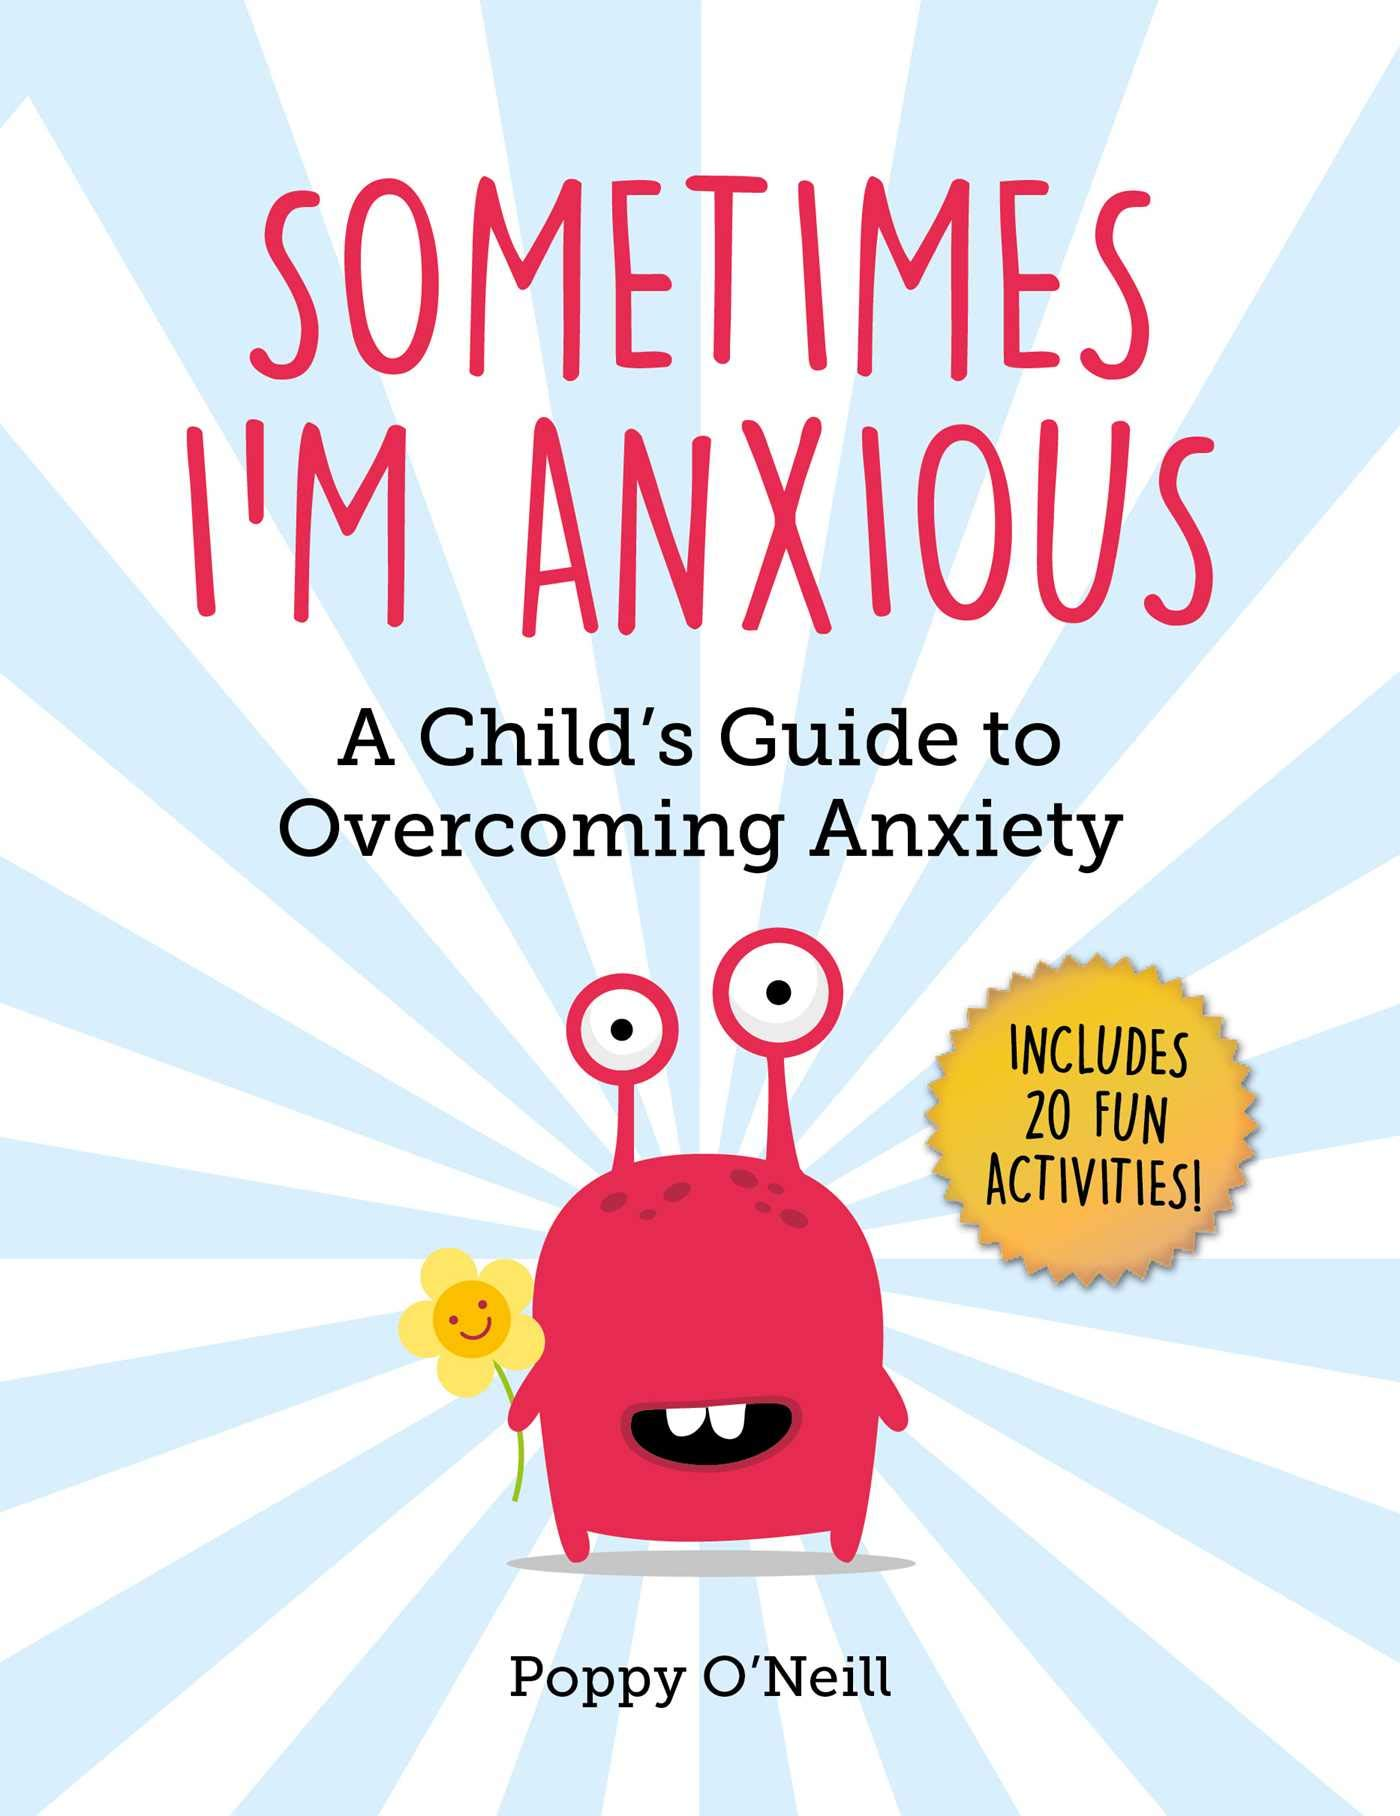 Why Childhood Anxiety Often Goes >> Sometimes I M Anxious A Child S Guide To Overcoming Anxiety Poppy